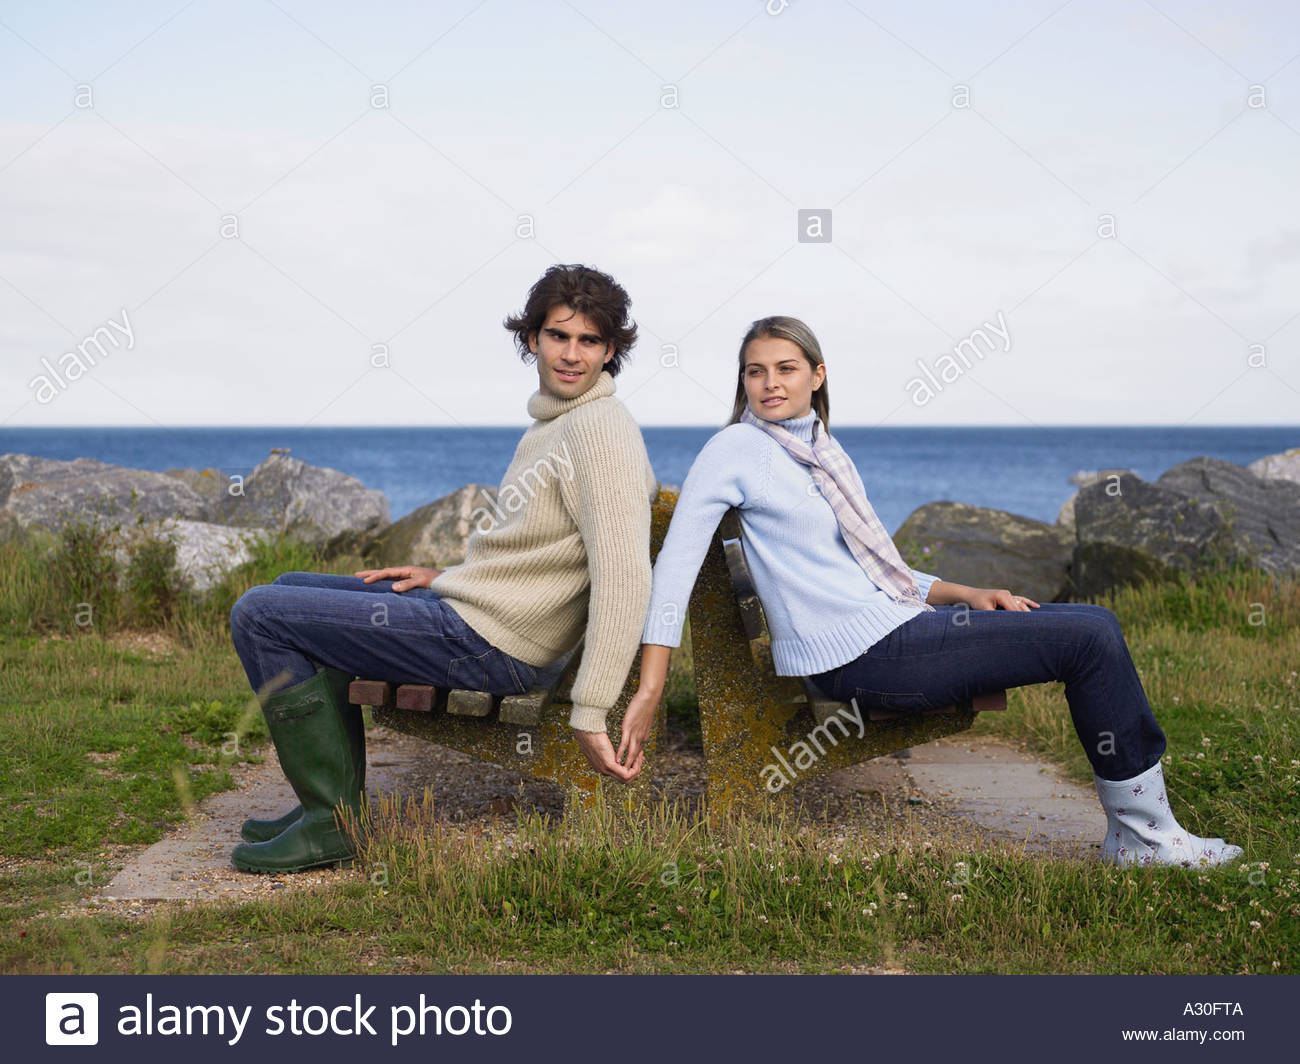 Couple on bench by ocean - Stock Image